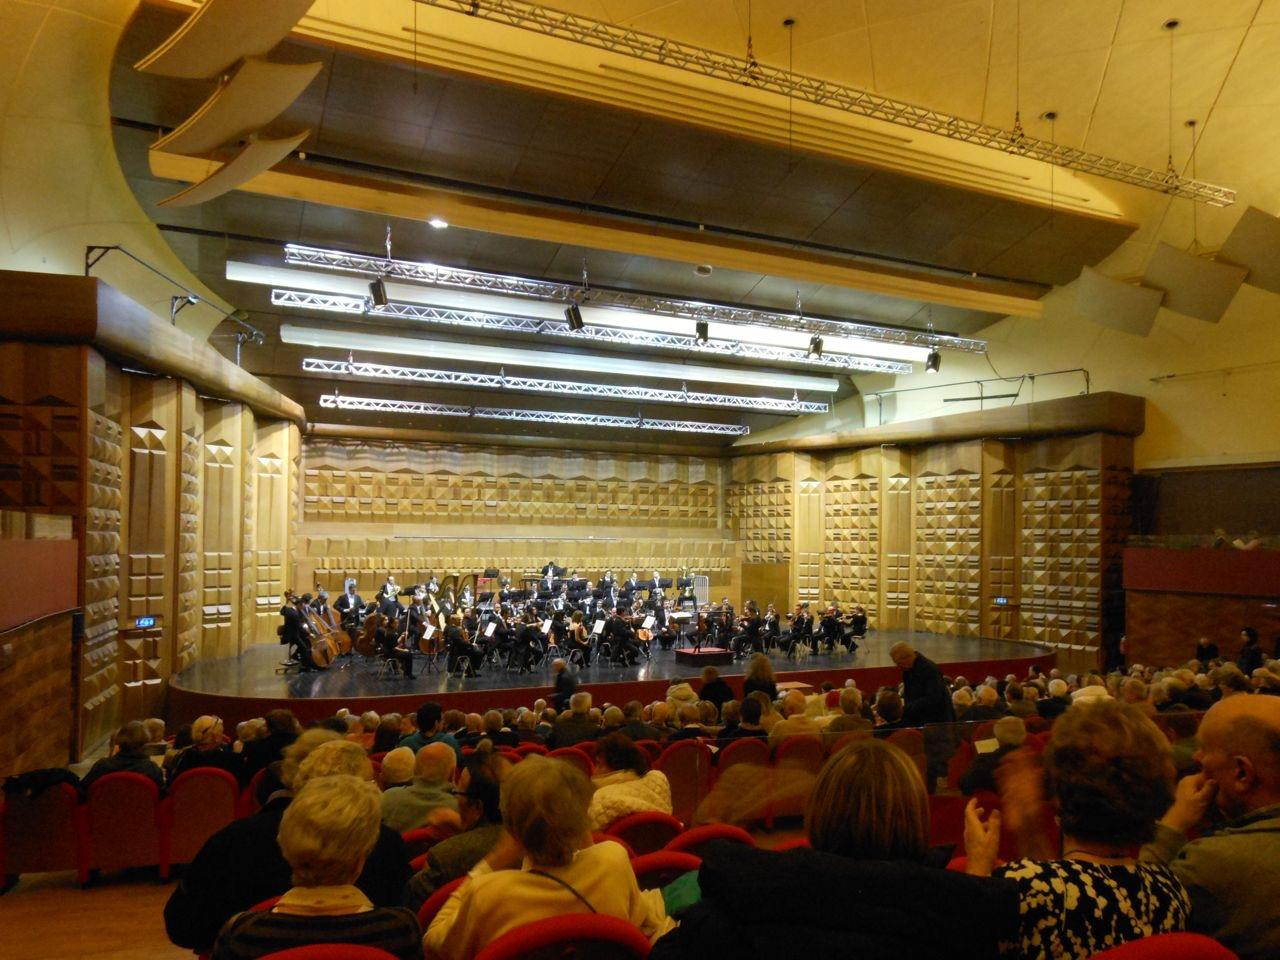 Sgambati symphony 2 new world premiere, Rome February 2014